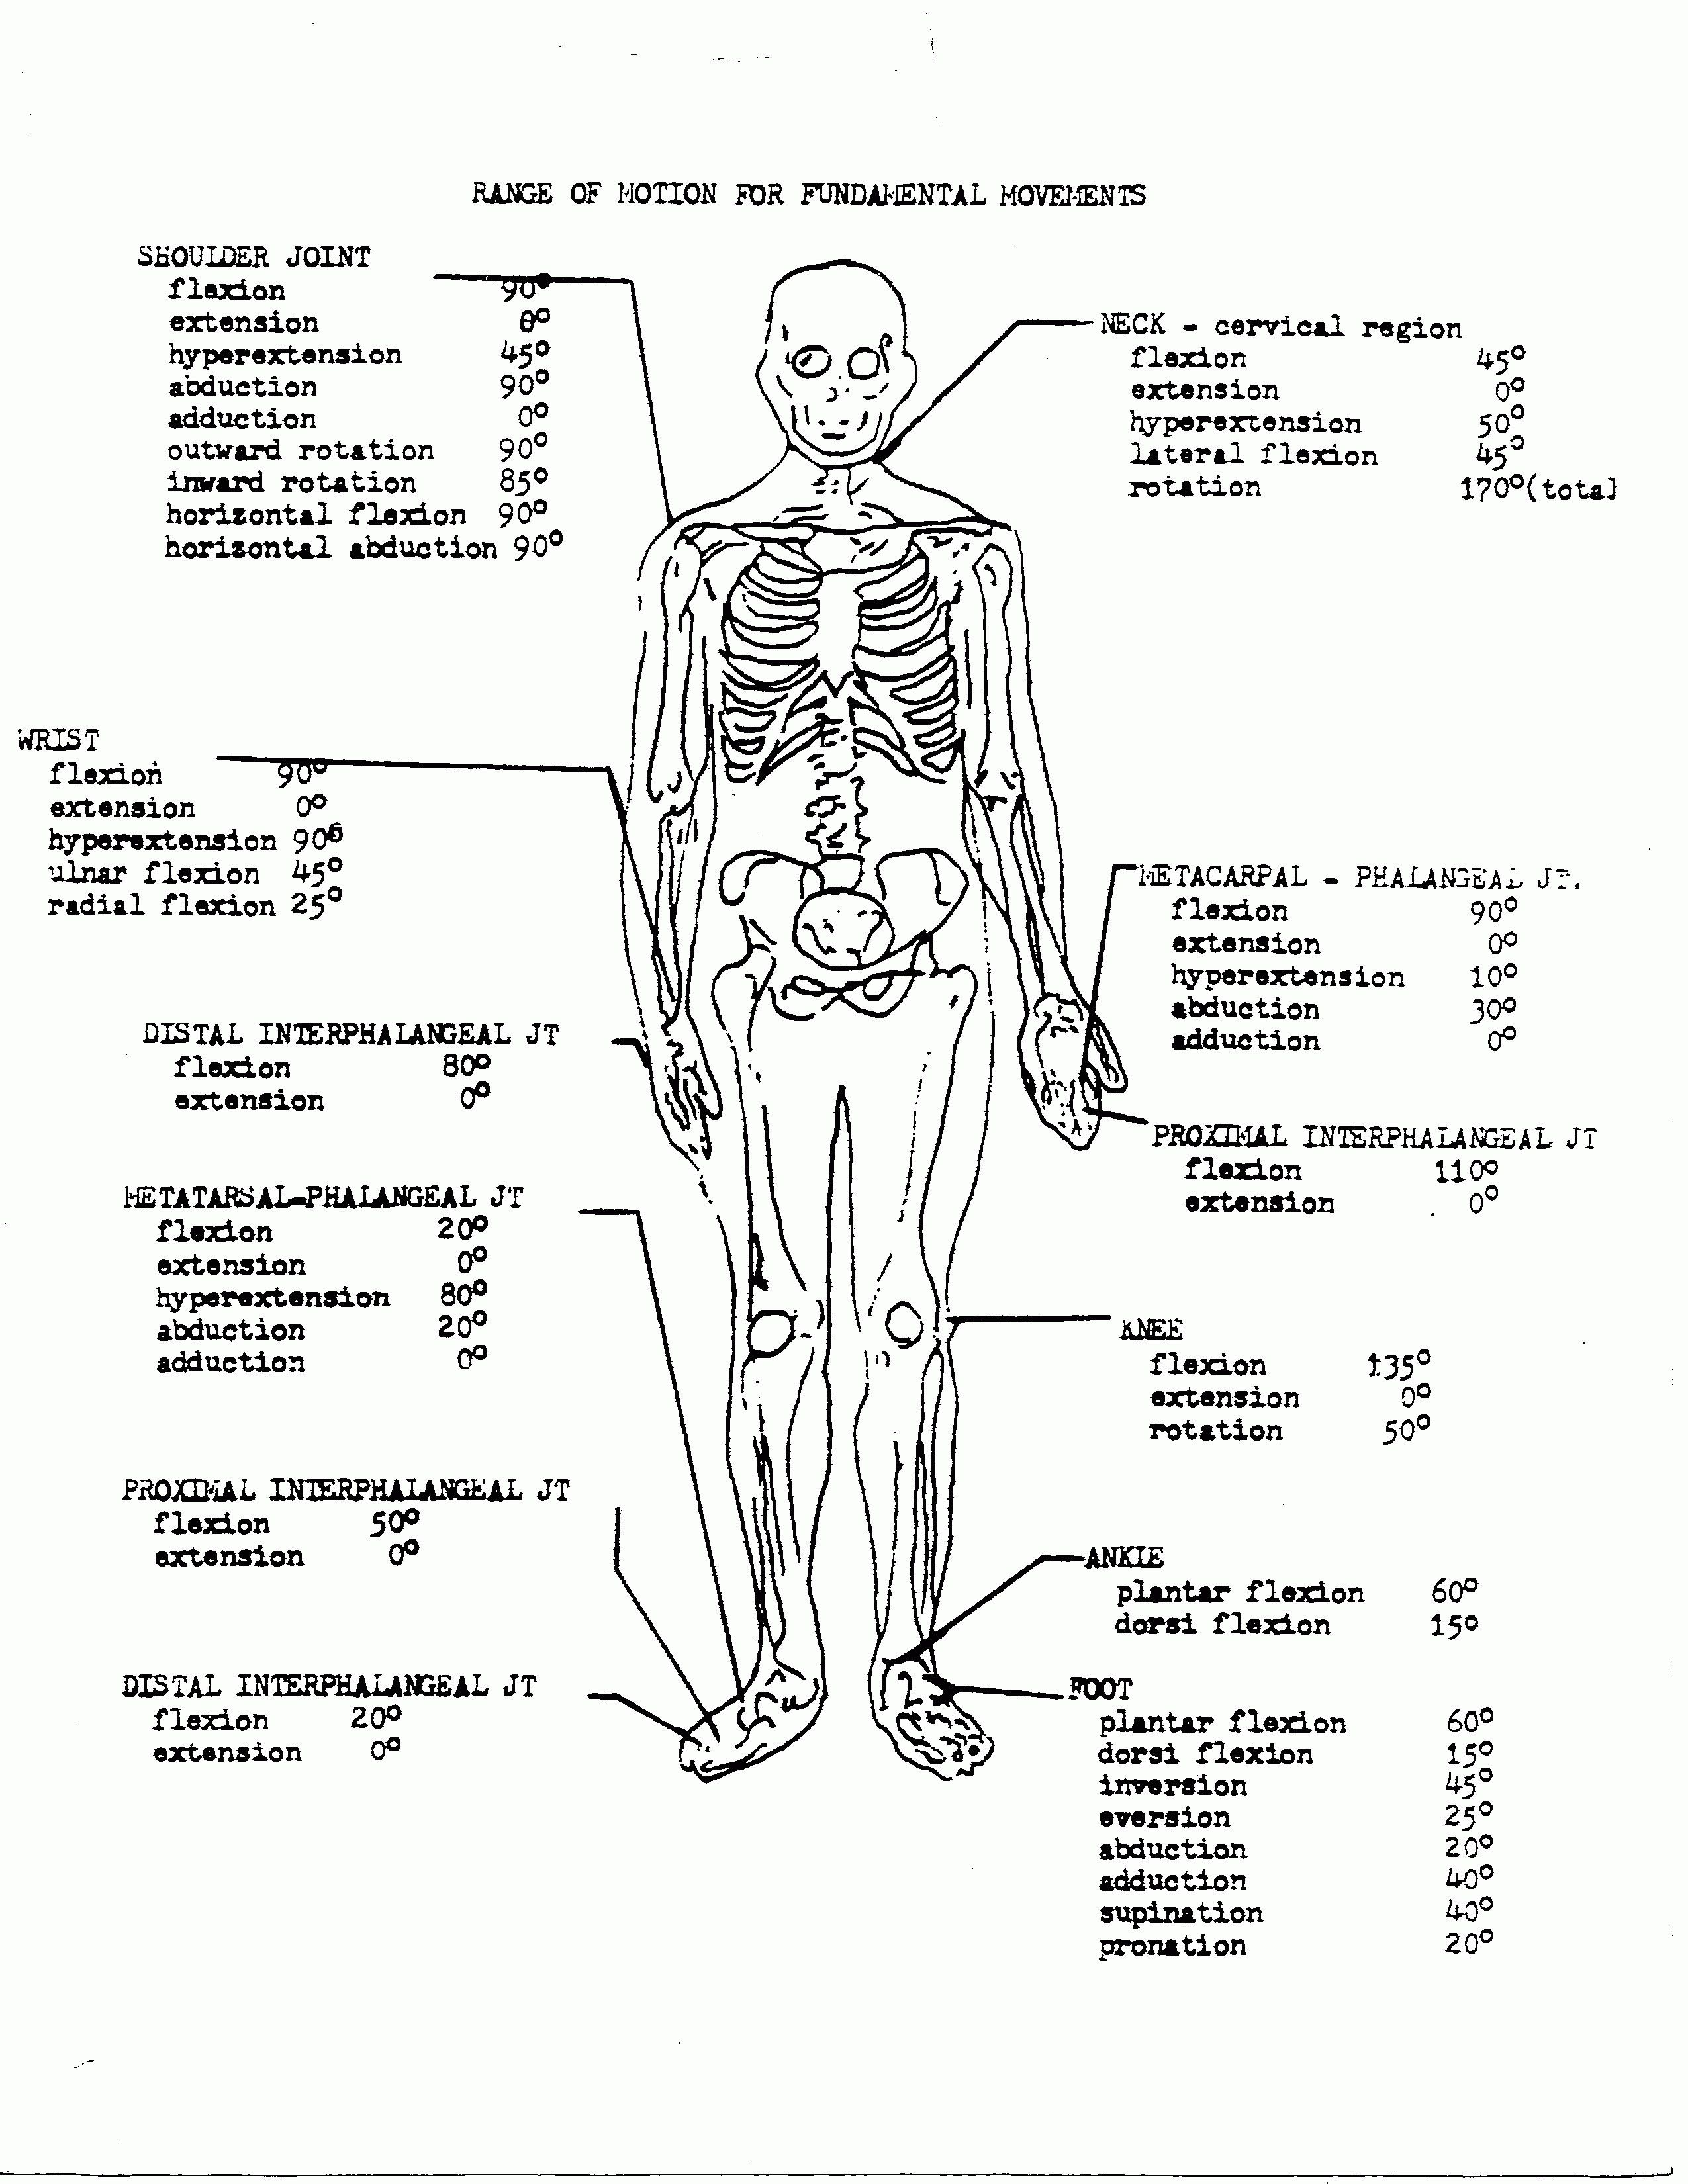 Anatomy And Physiology Coloring Workbook Answer Key Unique Coloring Book World Anatomy And Physiology Color Anatomy Coloring Book Coloring Books Coloring Pages